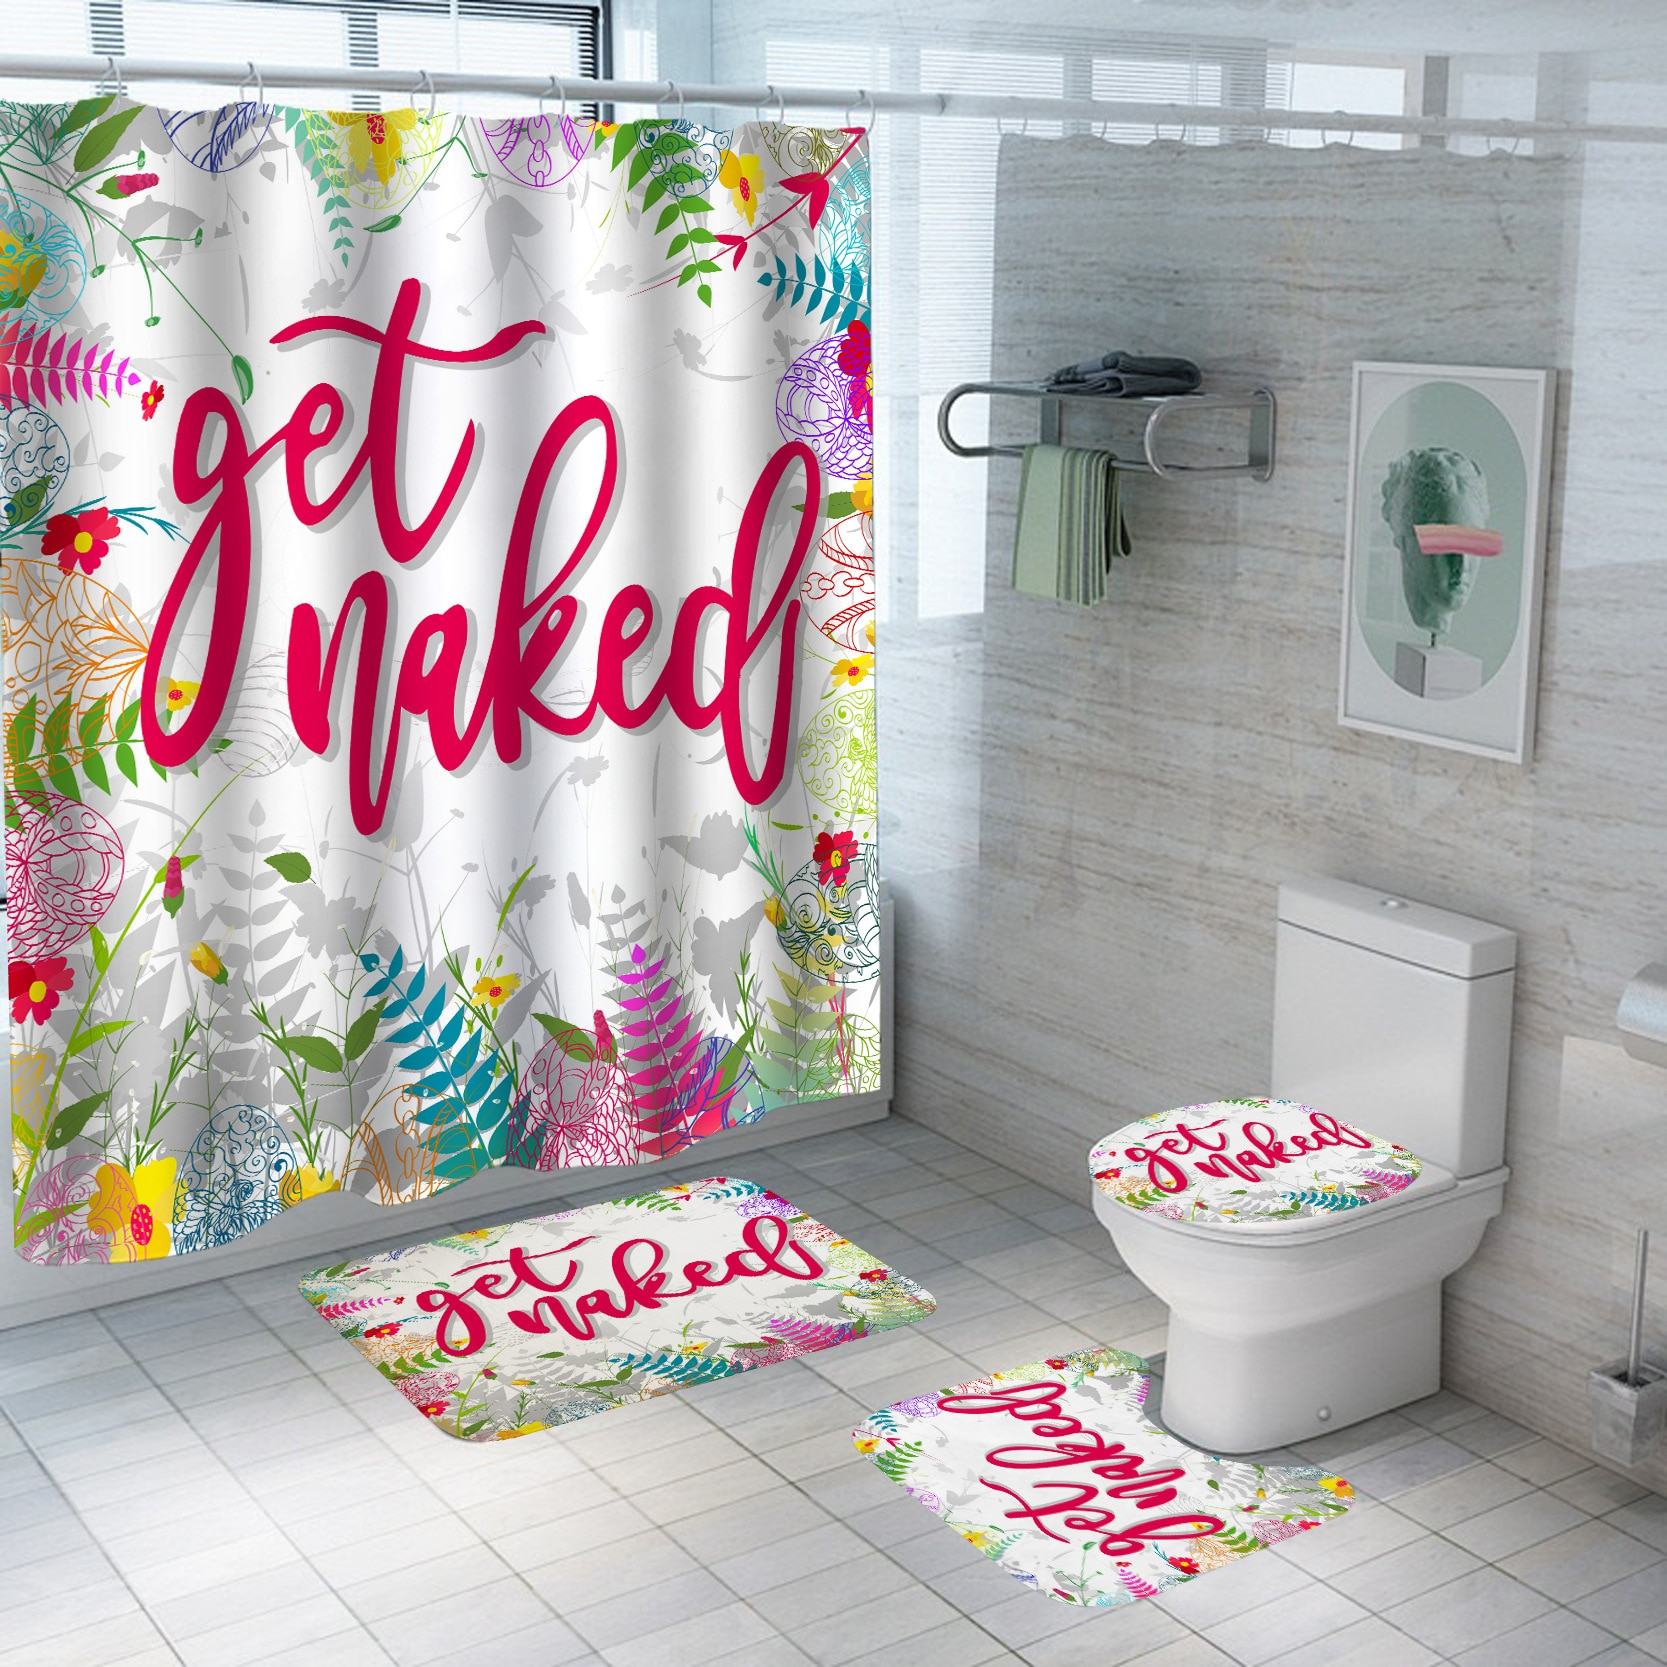 christmas tree snowfield patterned bath shower curtain Bathroom Curtain Waterproof Polyester Shower Curtain Bathroom with Hook Shower Curtain Bathroom Accessories Bath Mat Toilet Mat